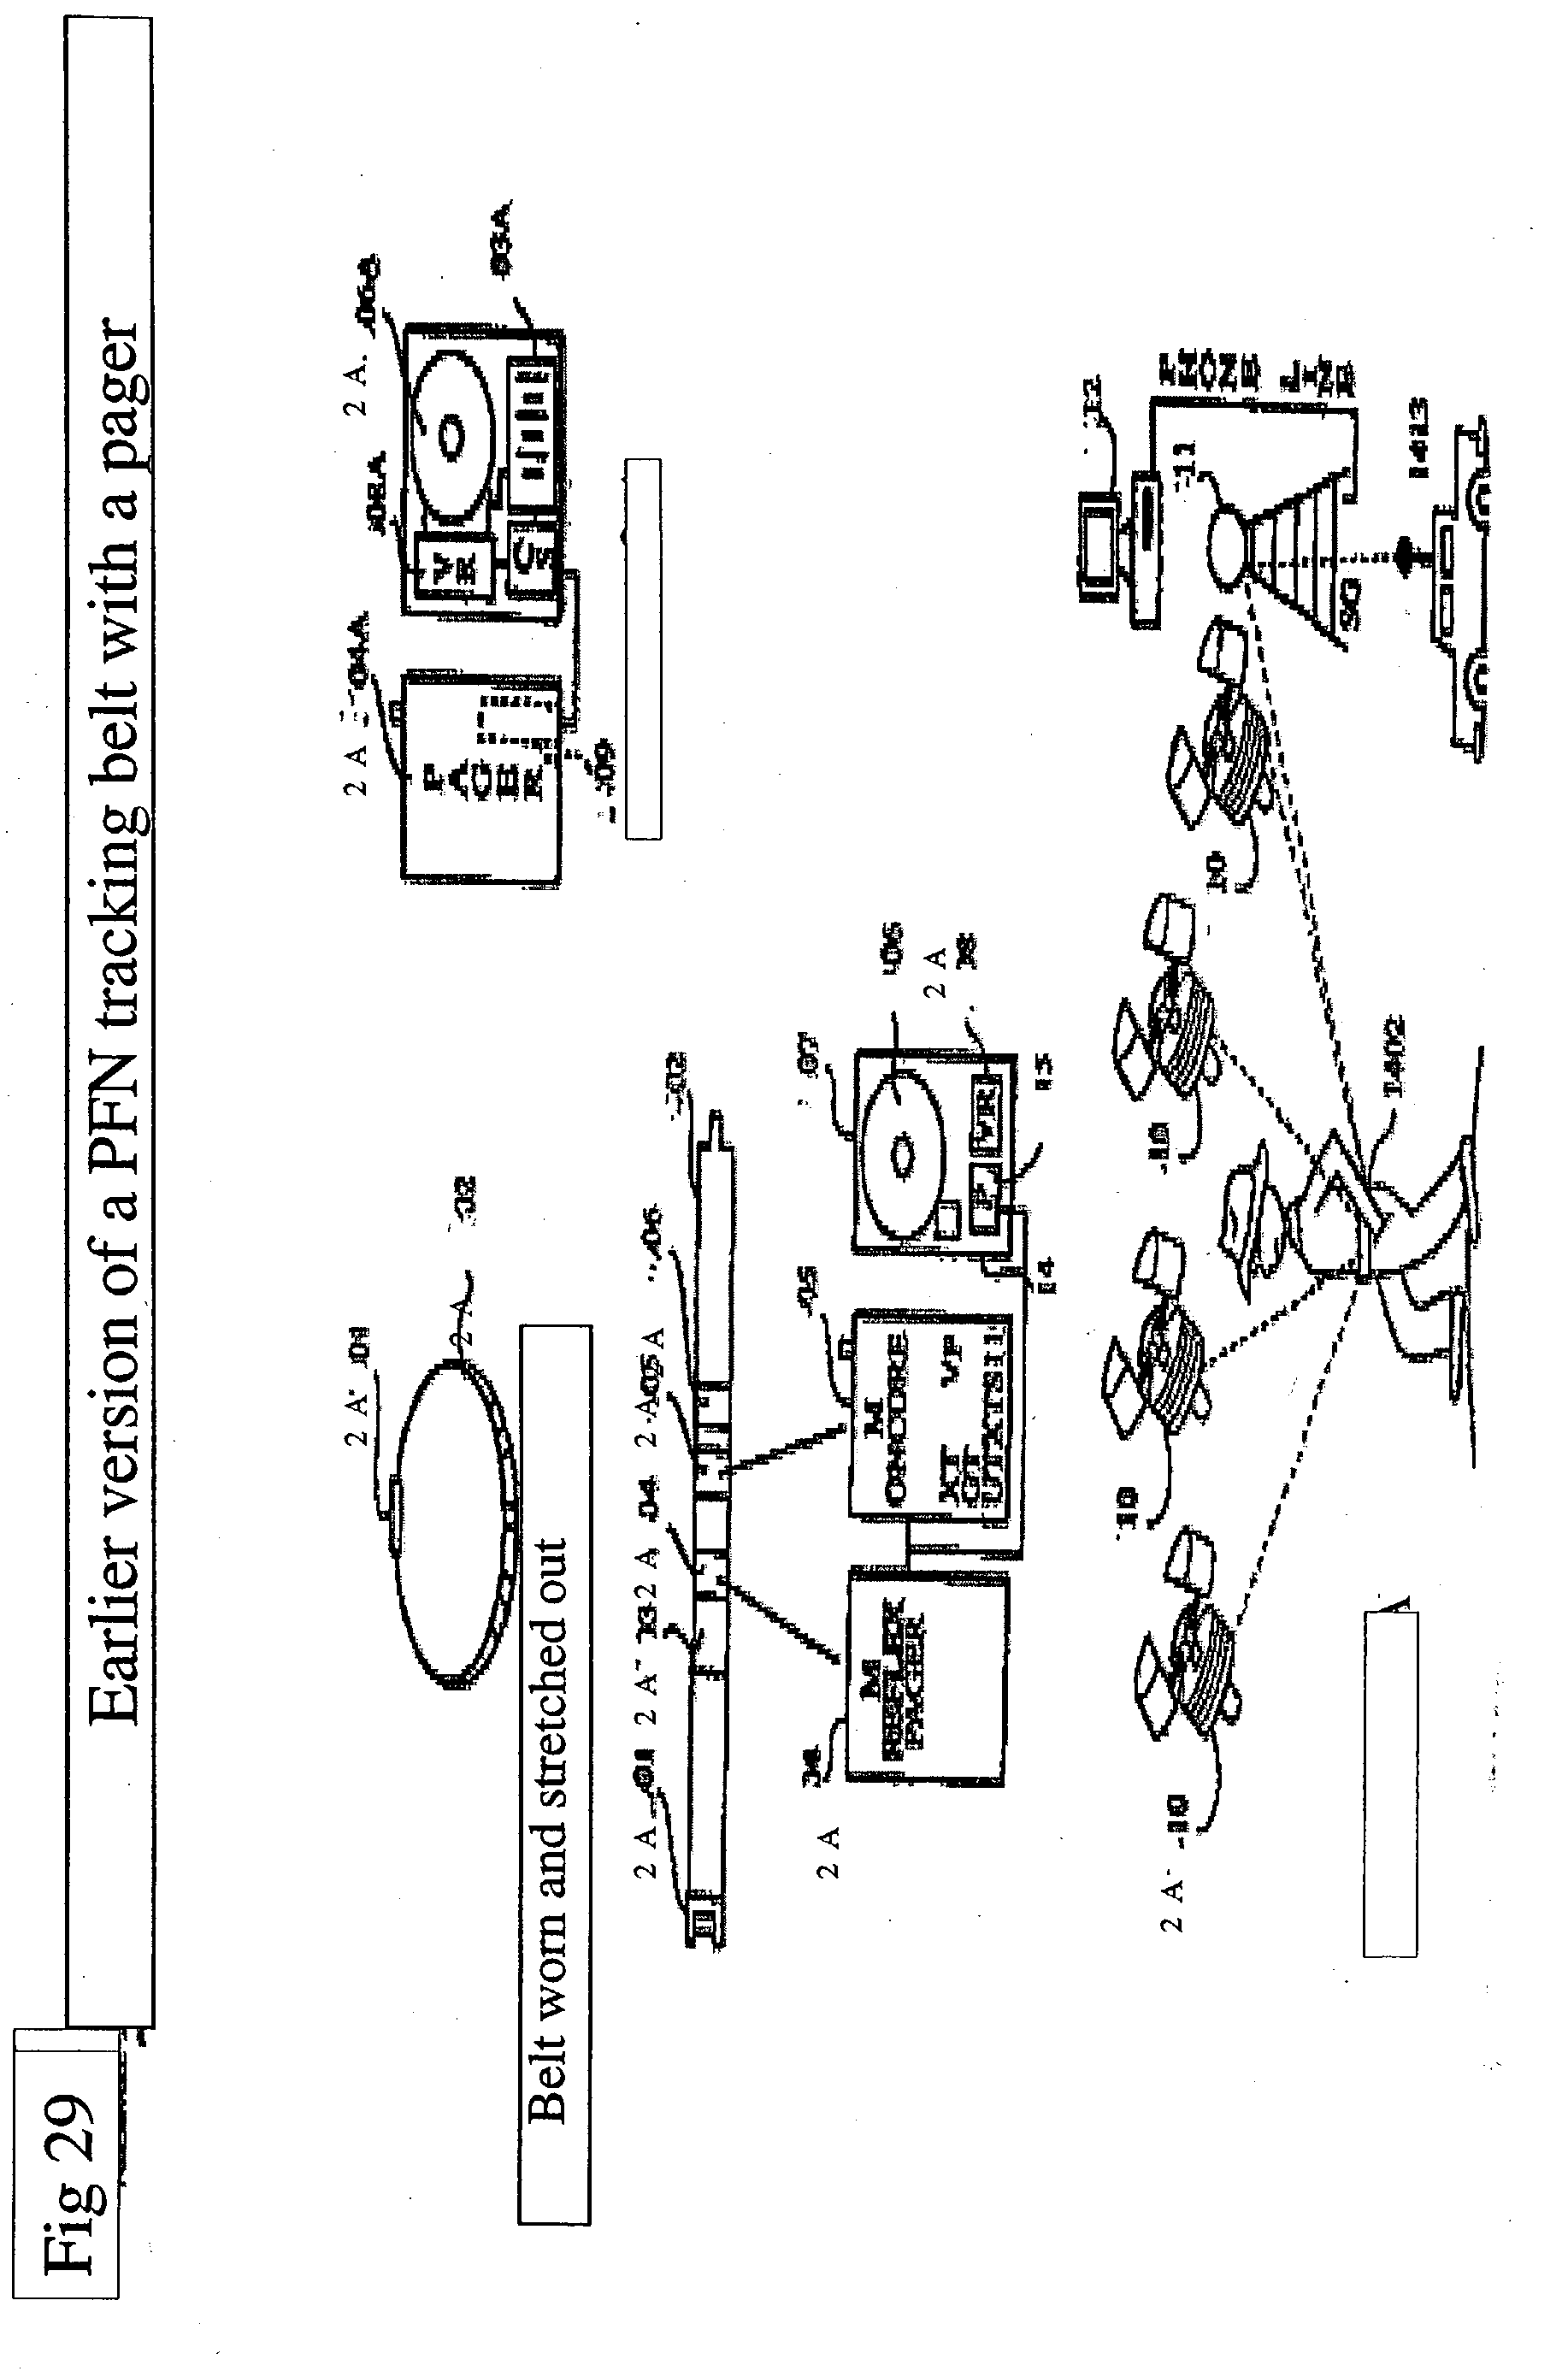 patent us20030093187 pfn trac systemtm faa upgrades for accountable remote and robotics